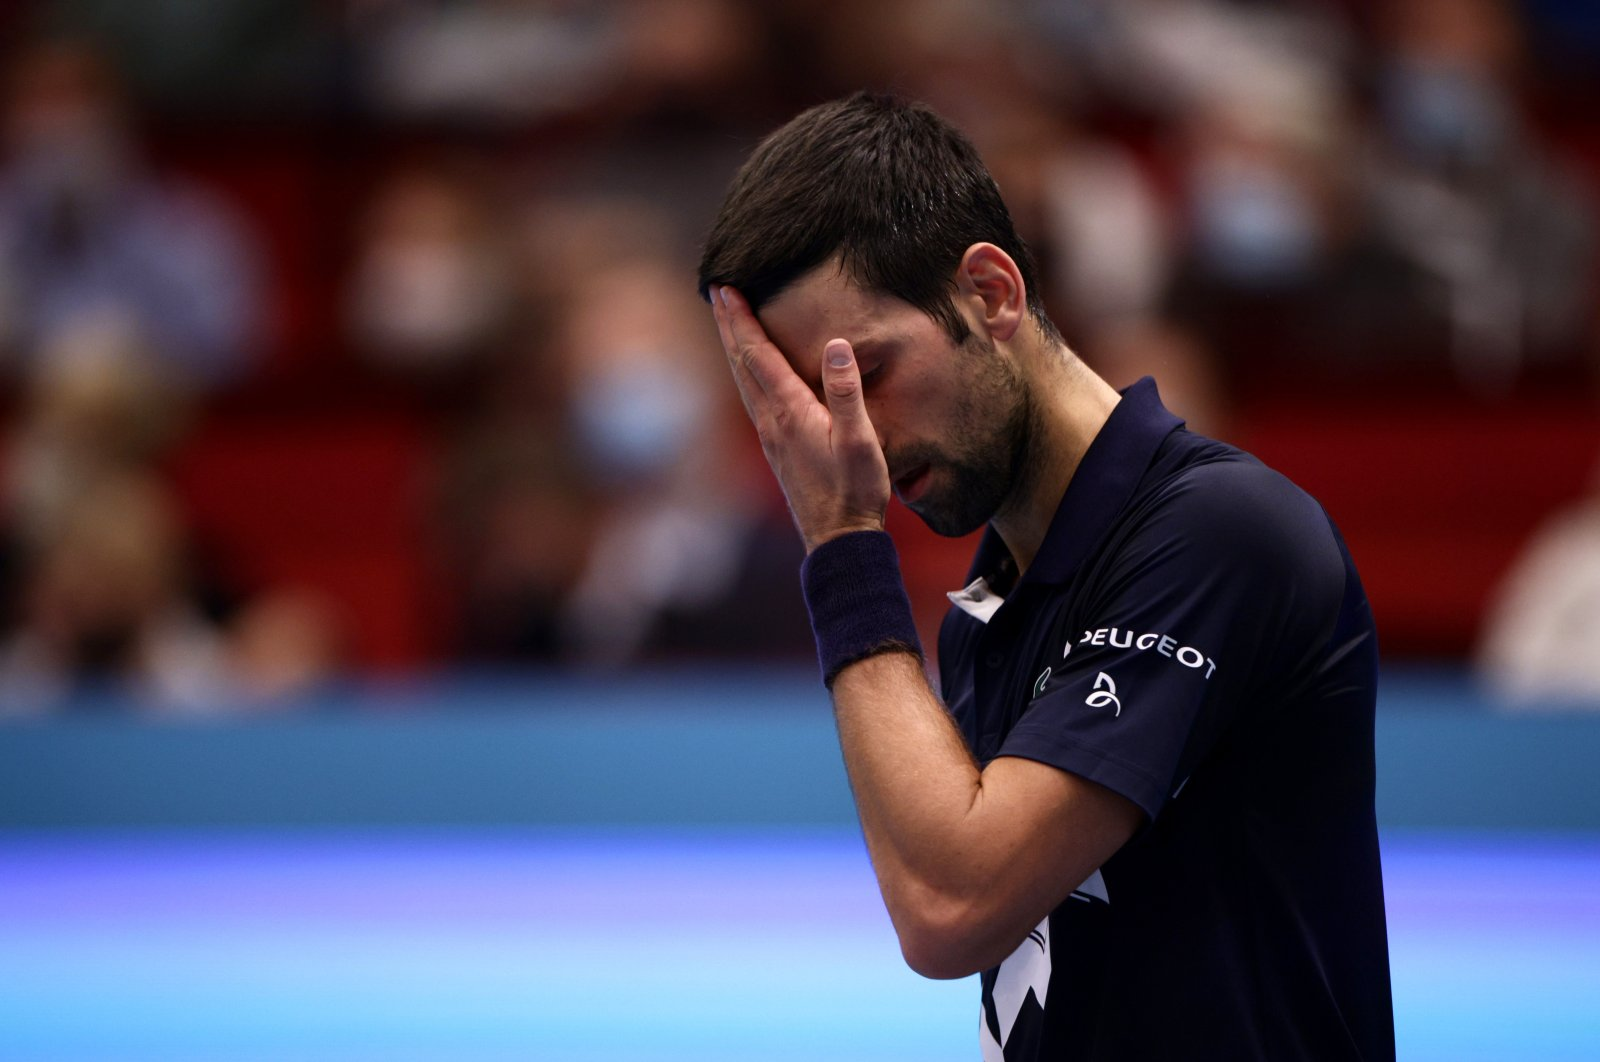 Serbia's Novak Djokovic reacts during his quarterfinal match against Italy's Lorenzo Sonego, Vienna, Oct. 30, 2020. (Reuters Photo)